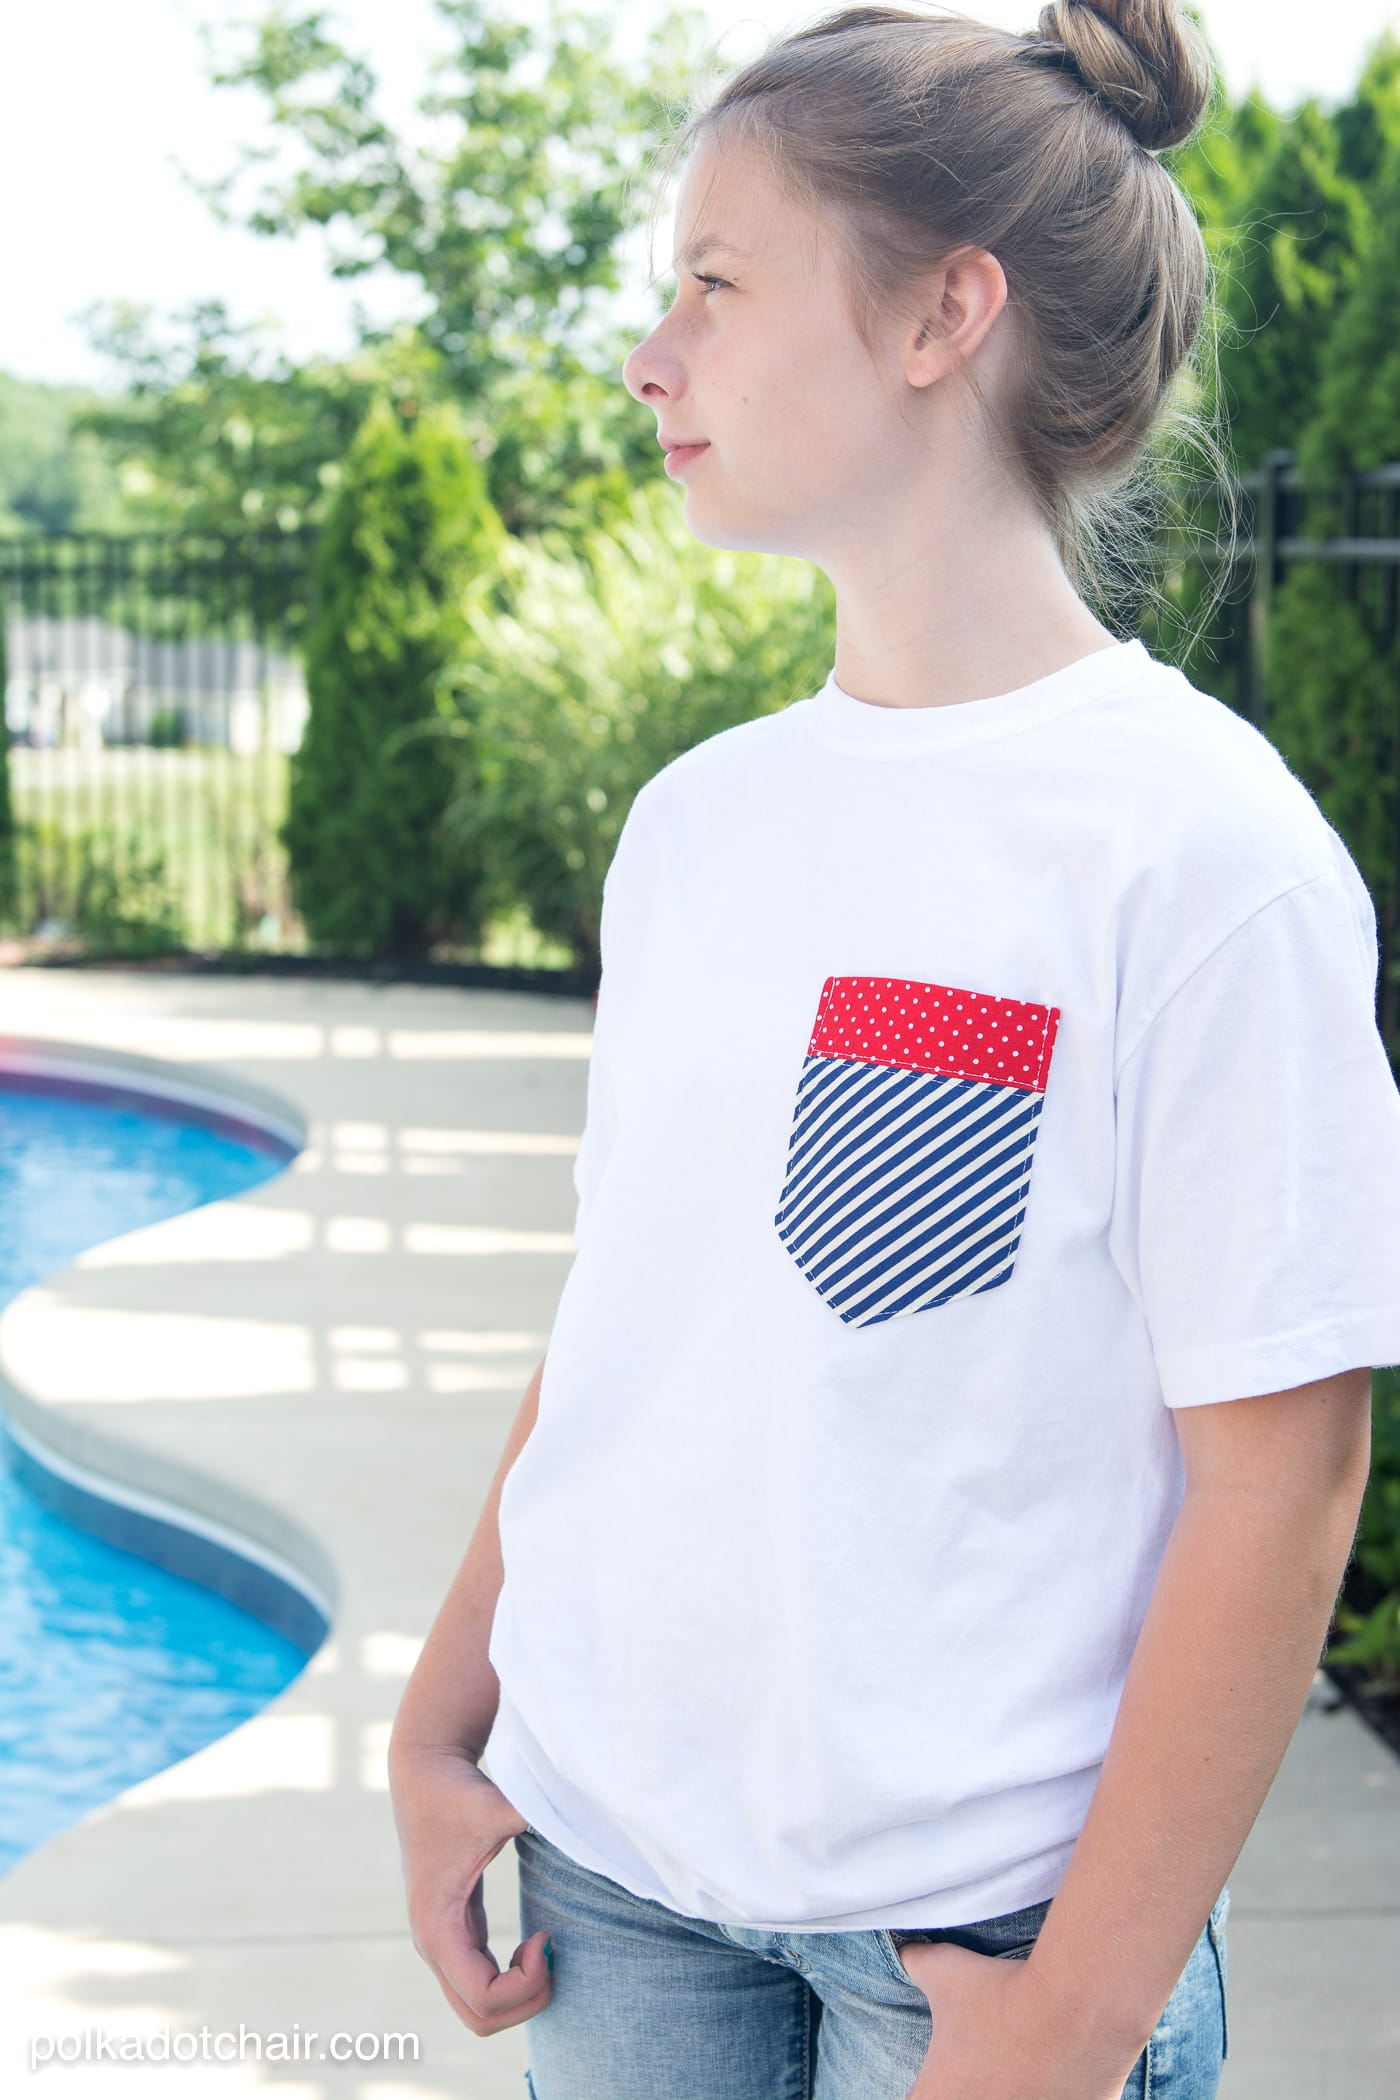 Diy Pocket 4th Of July Shirts On Polkadotchair Com